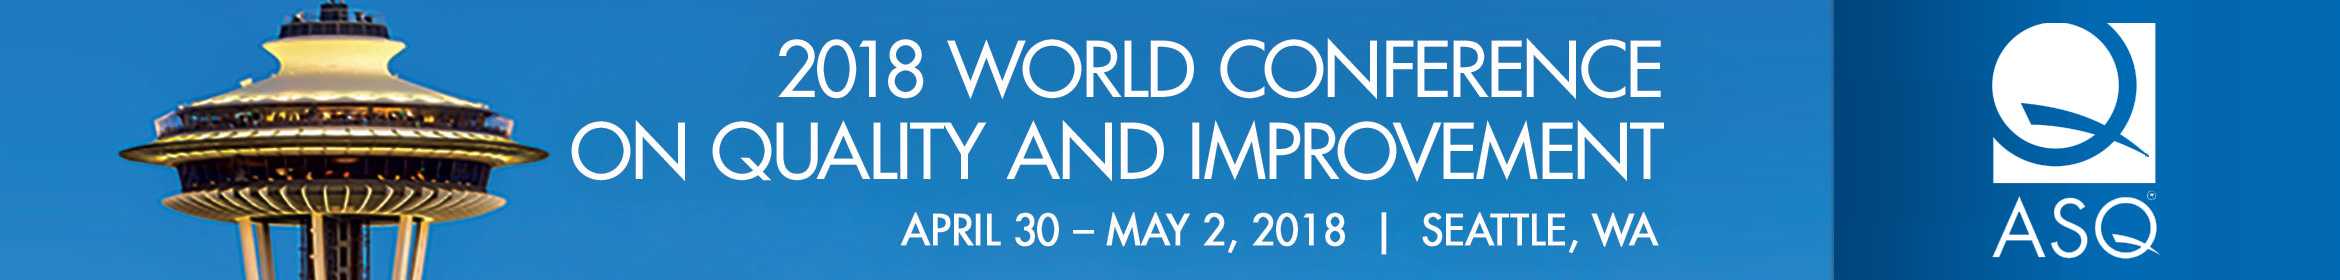 2018 World Conference Call for Proposals Main banner